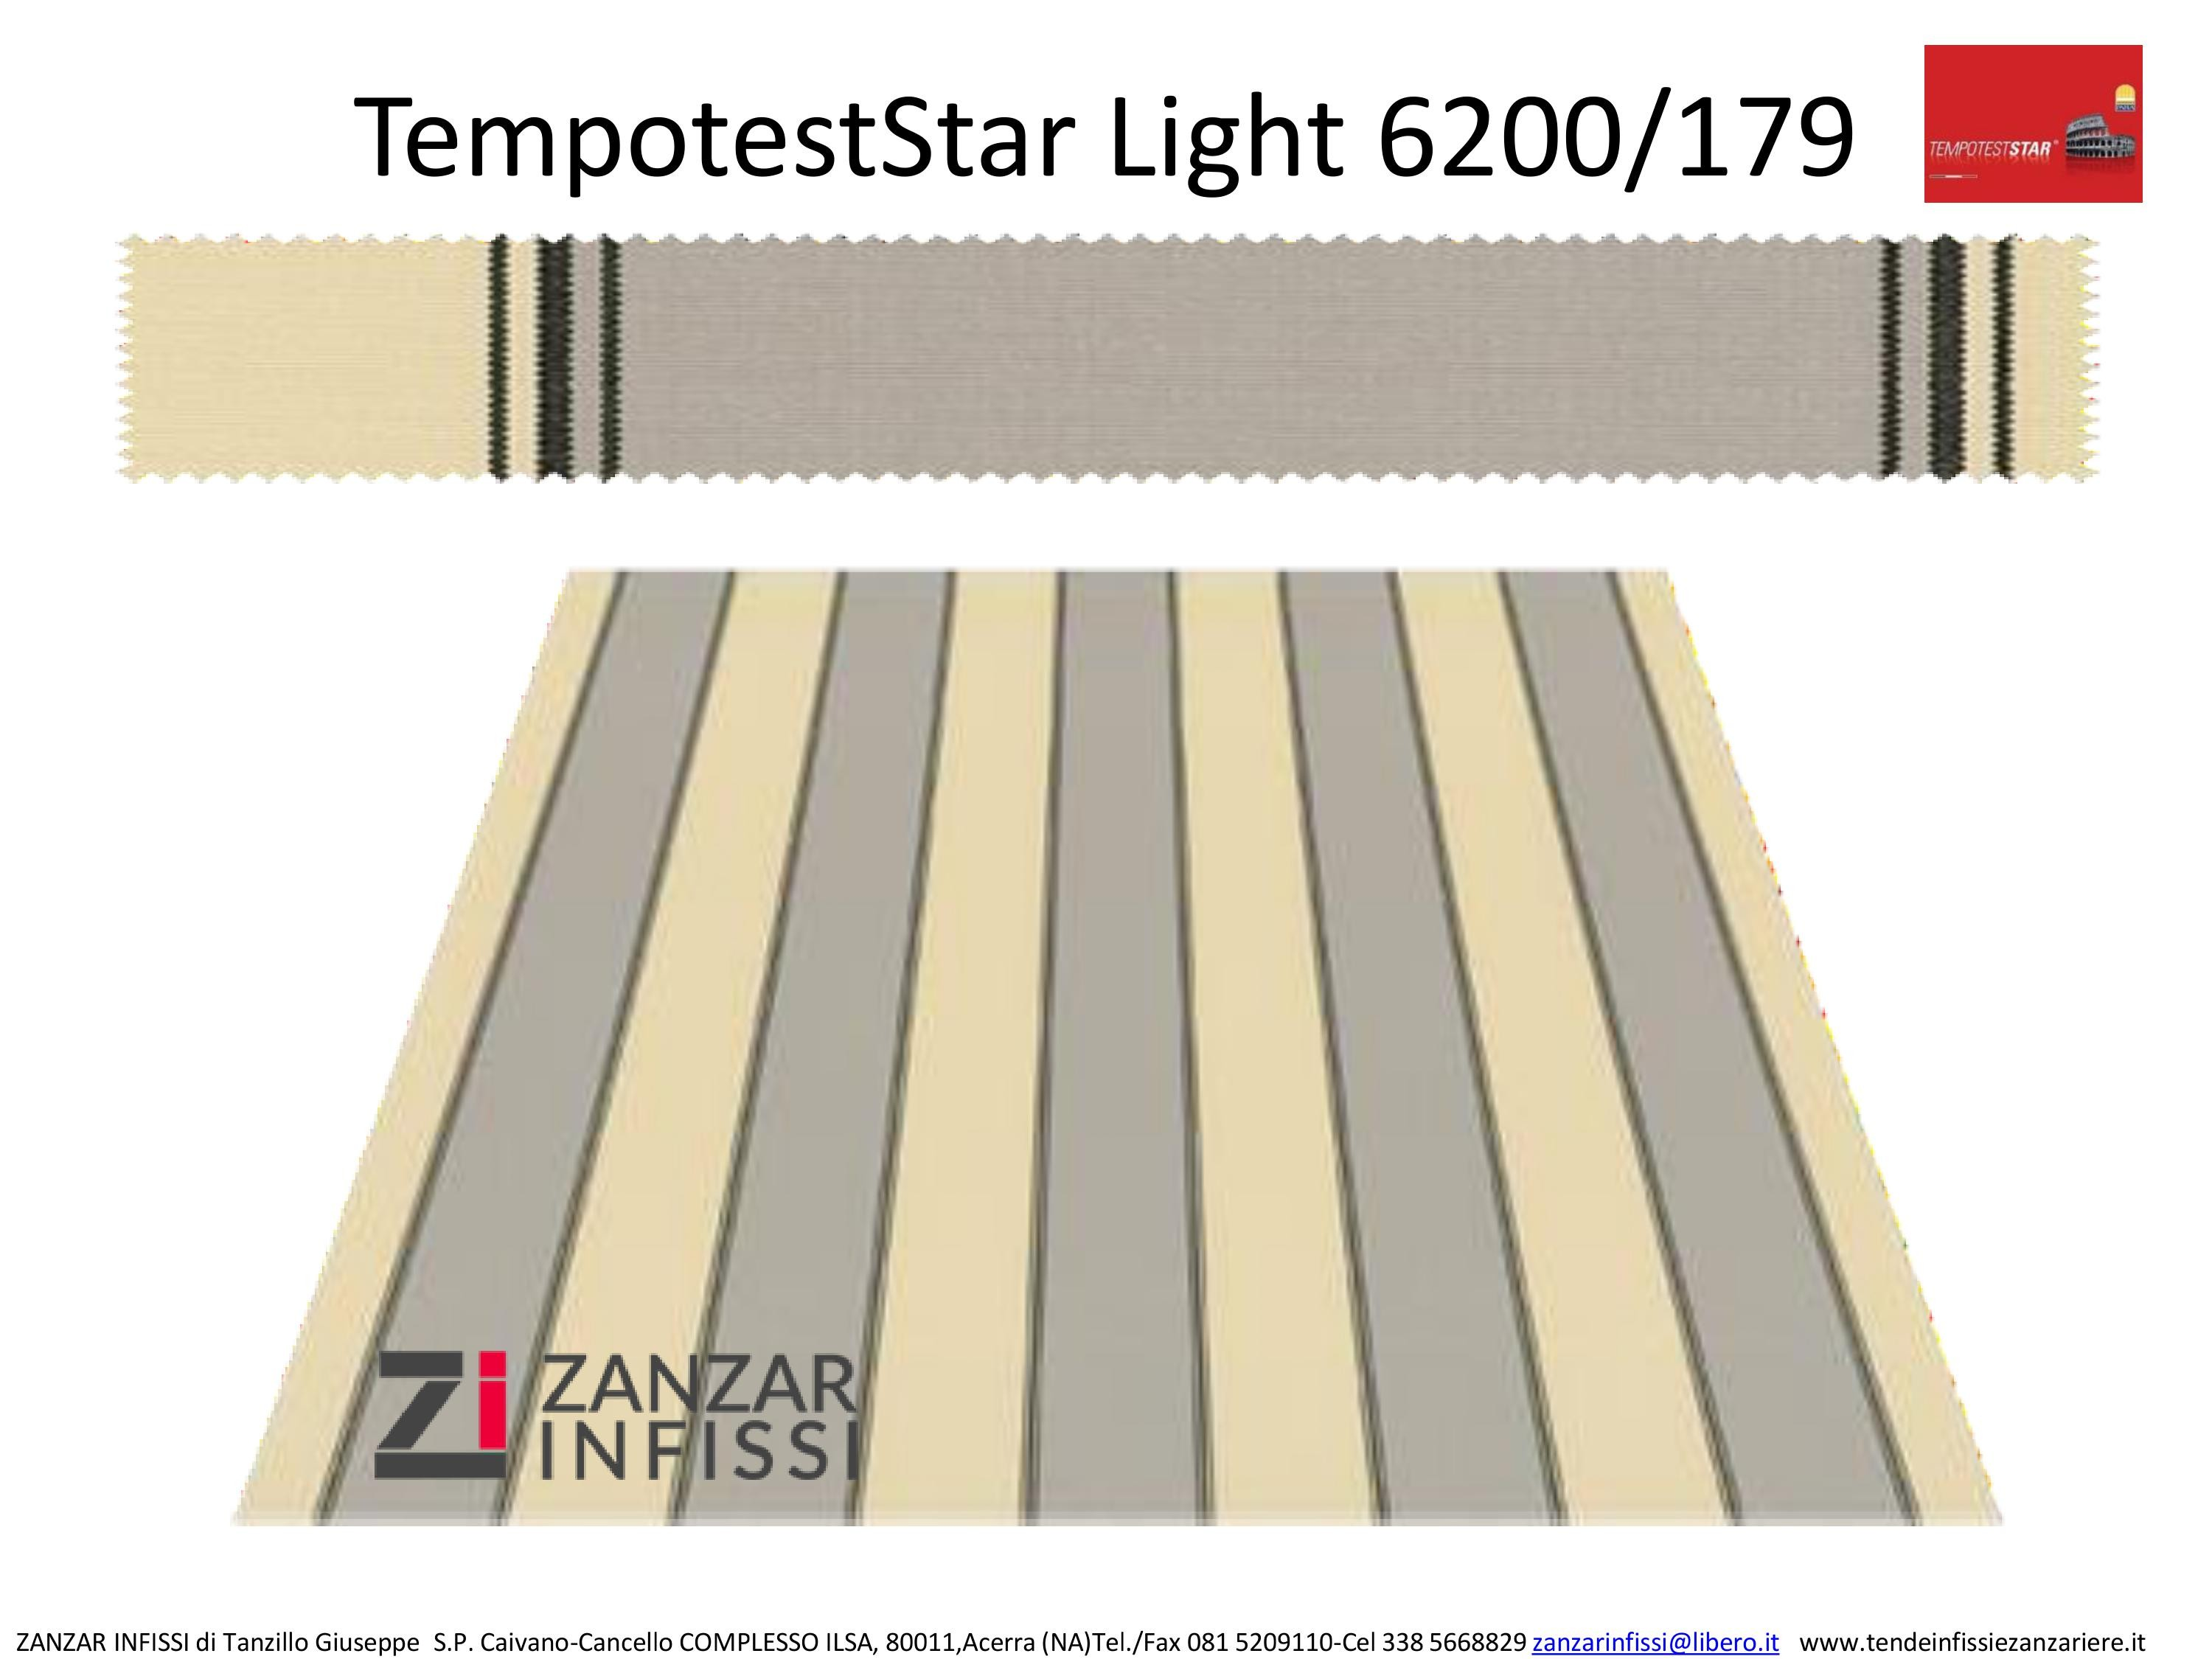 Tempotest star light 6200/179